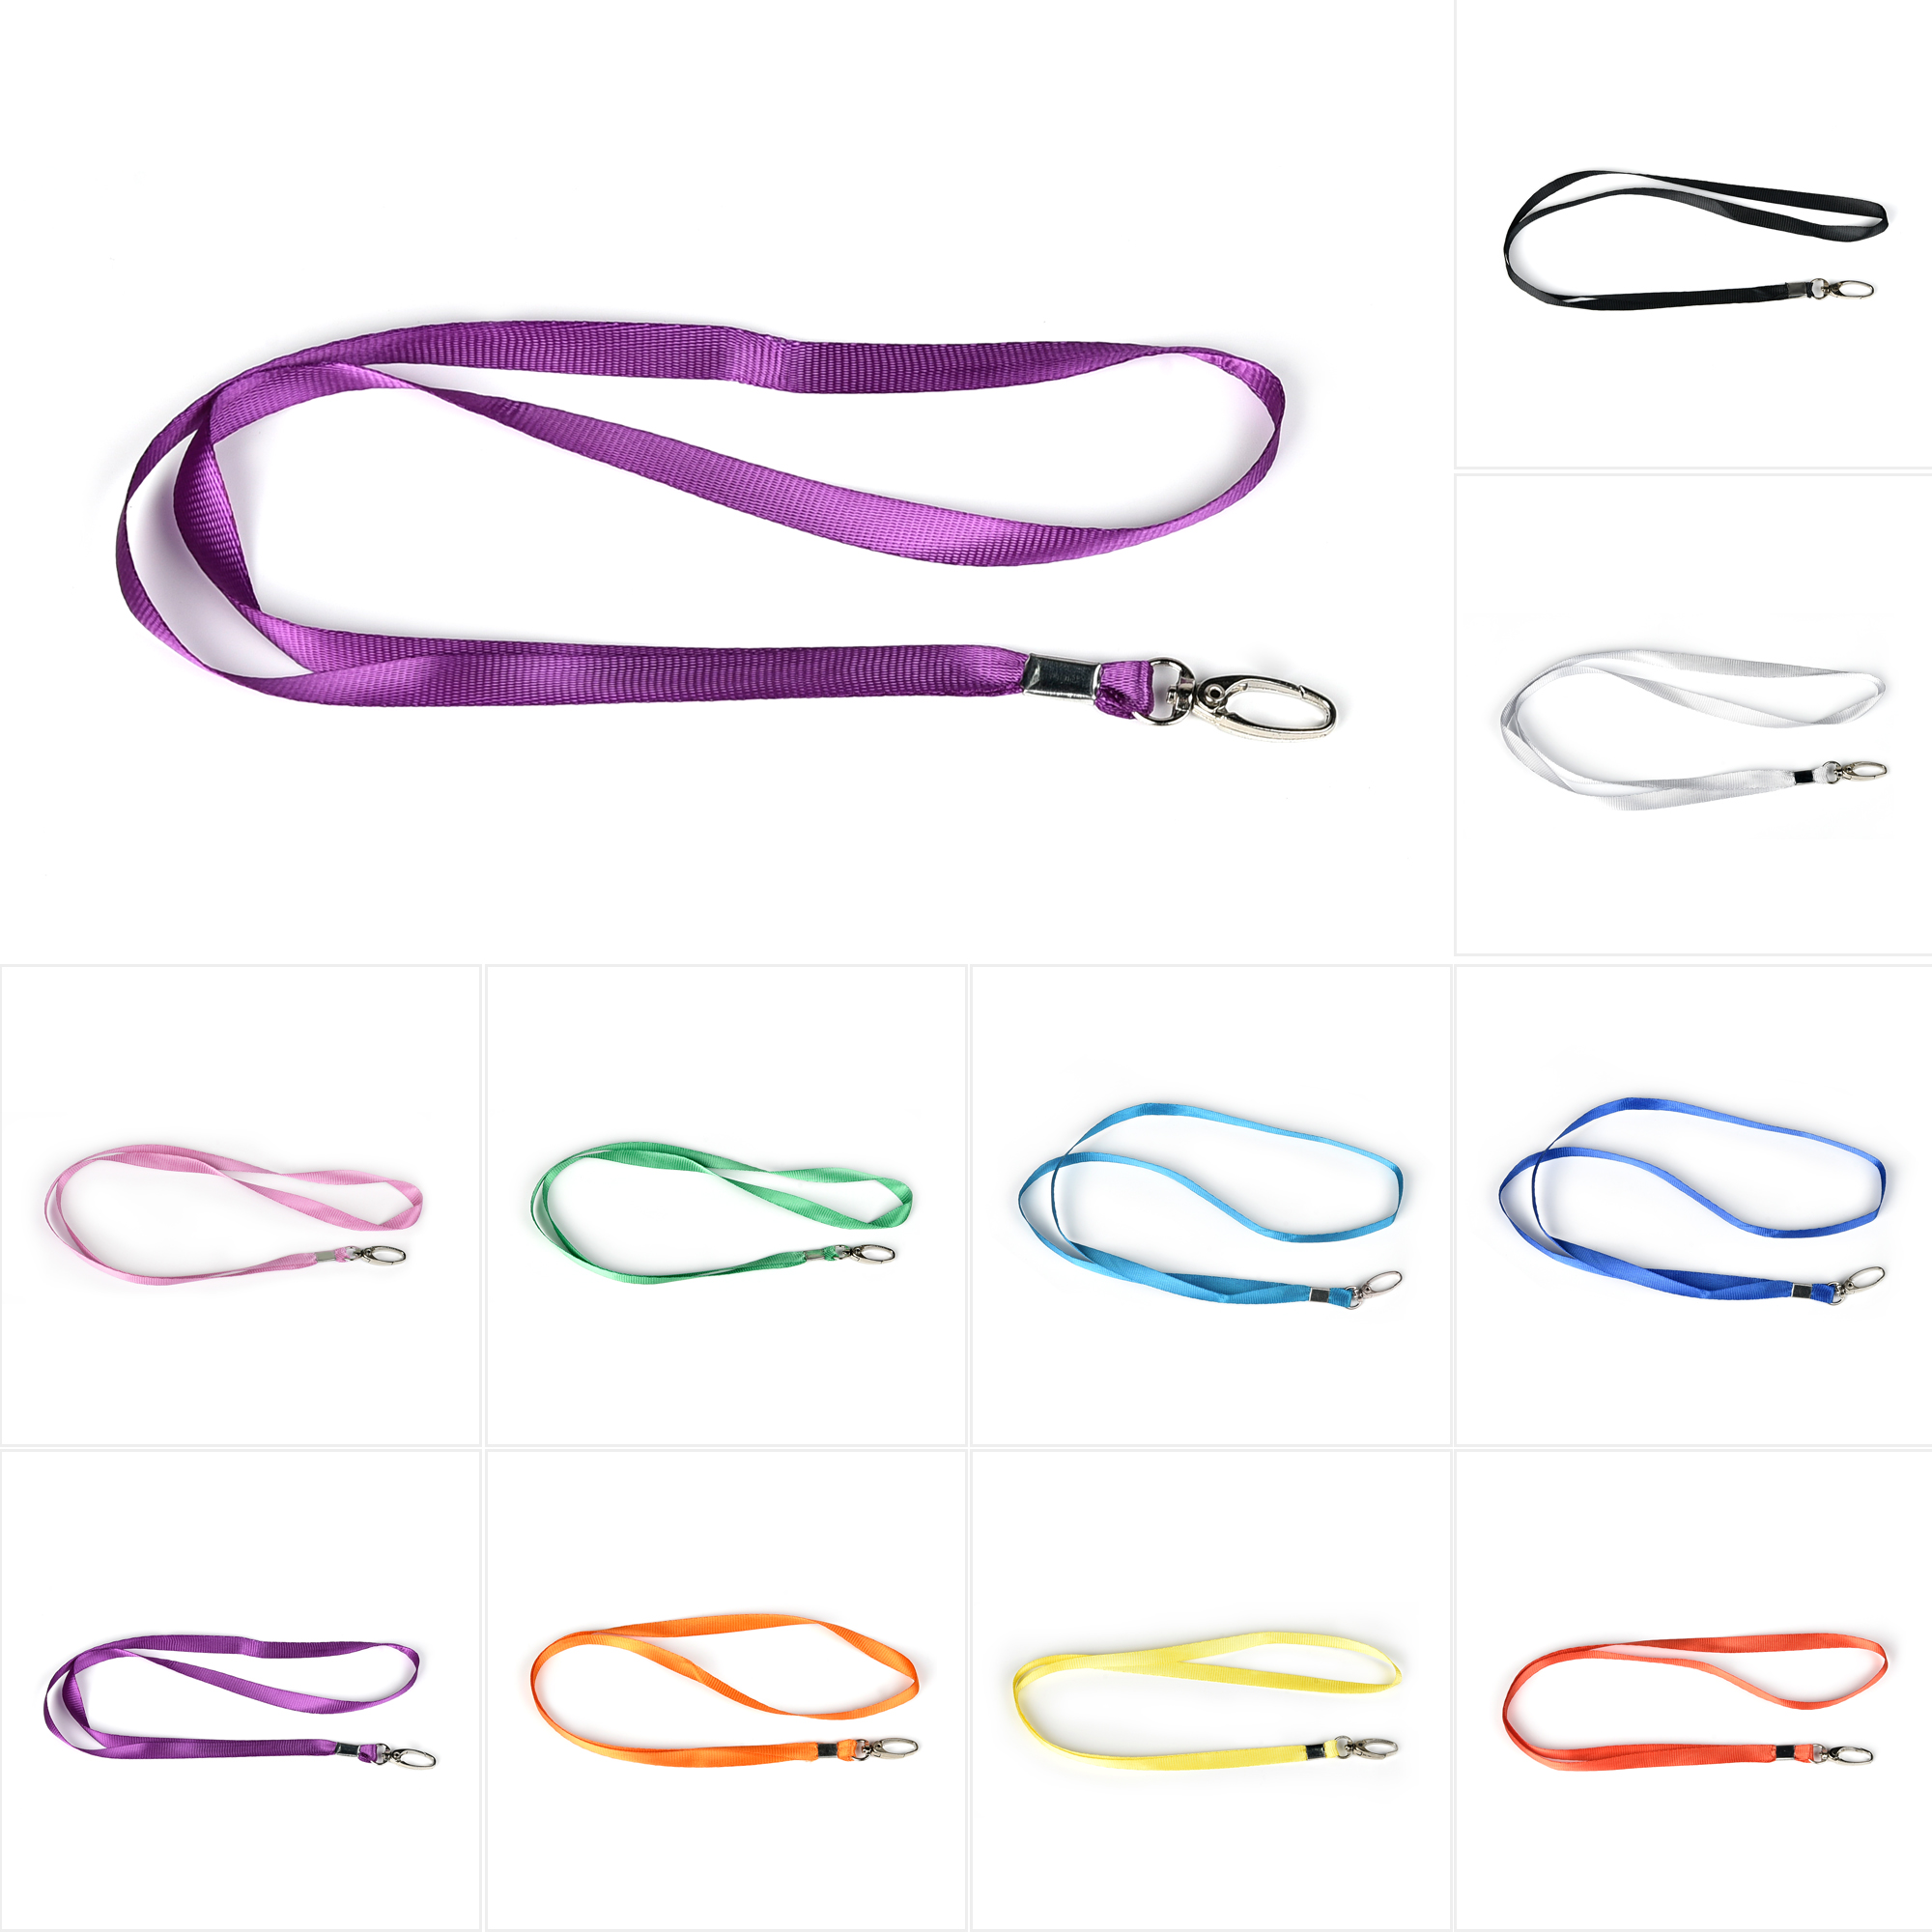 CUH Lanyards Neck ID Name Tag Straps Work Credit Card Badge Holder Lanyard Neck Strap Ideal for Name Tags, Trade Shows, ID Badge,Champion, Tours, and Events